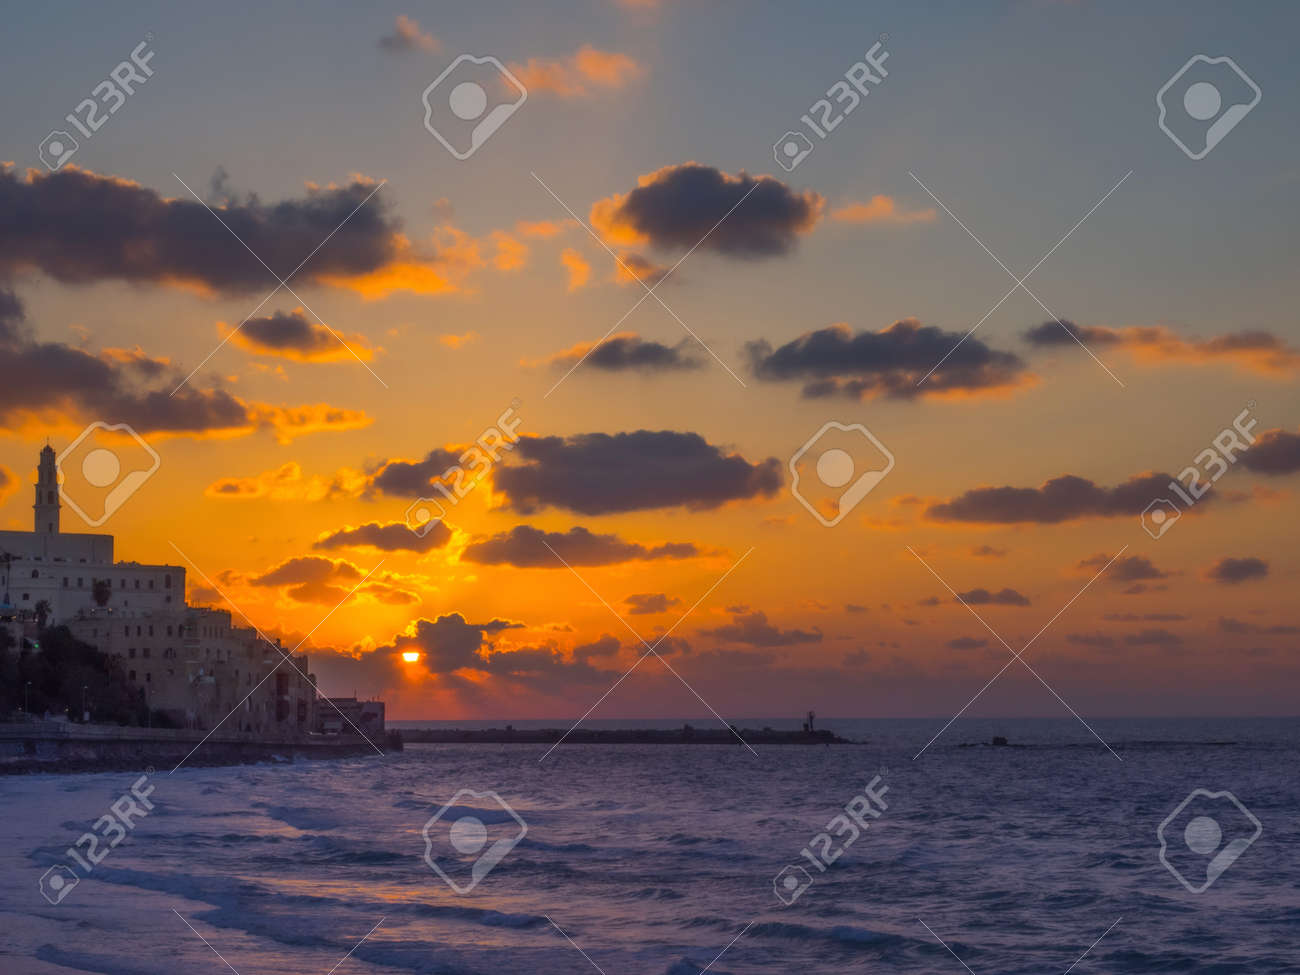 Coastal view of the ancient city of Yafo or Jaffanear Tel Aviv, Israel. Cityscape in sunset hour with clouds in the sky. - 170251309